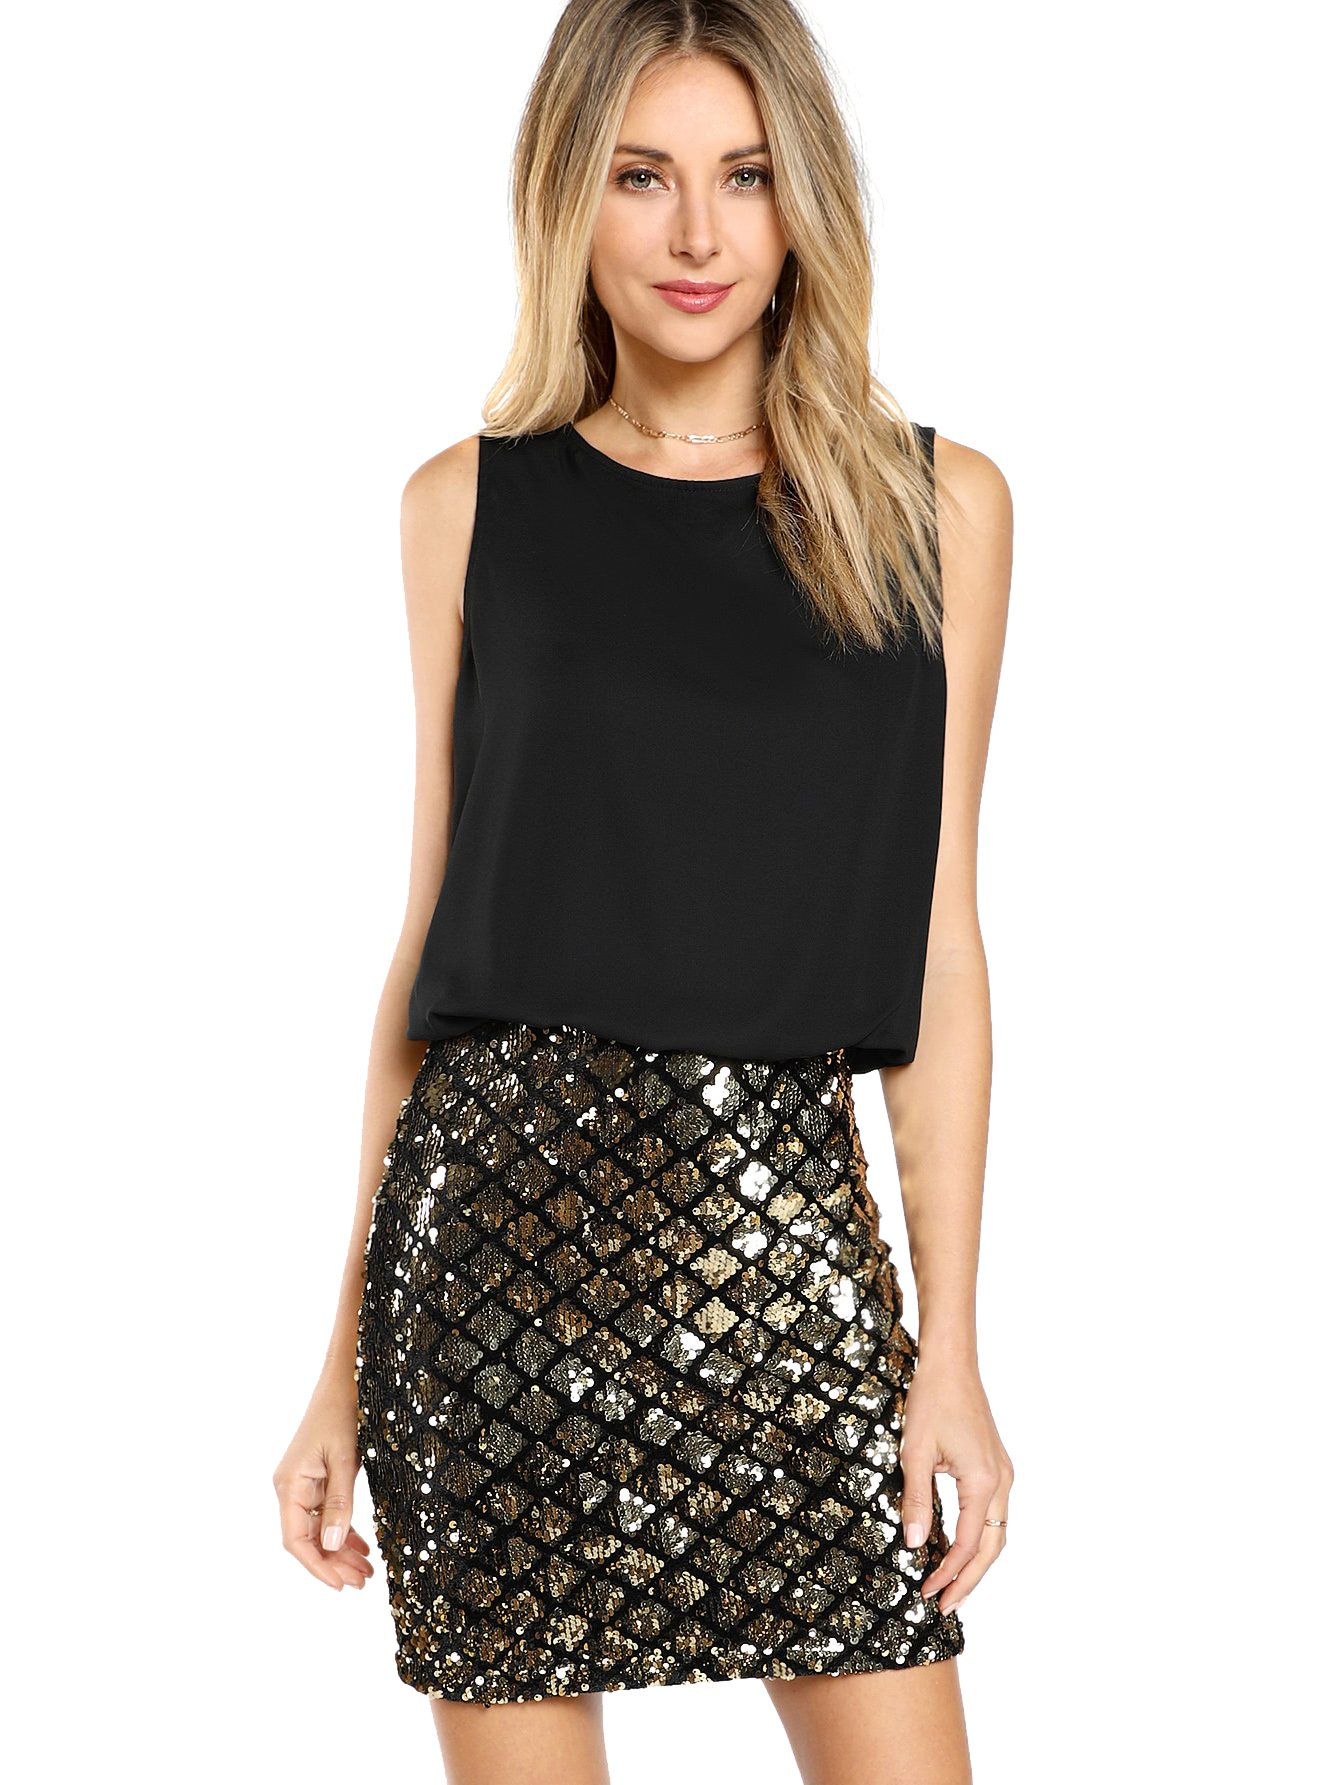 Party Dresses - Women's Sexy Layered Look Fashion Club Wear Party Sparkle Sequin Tank Dress